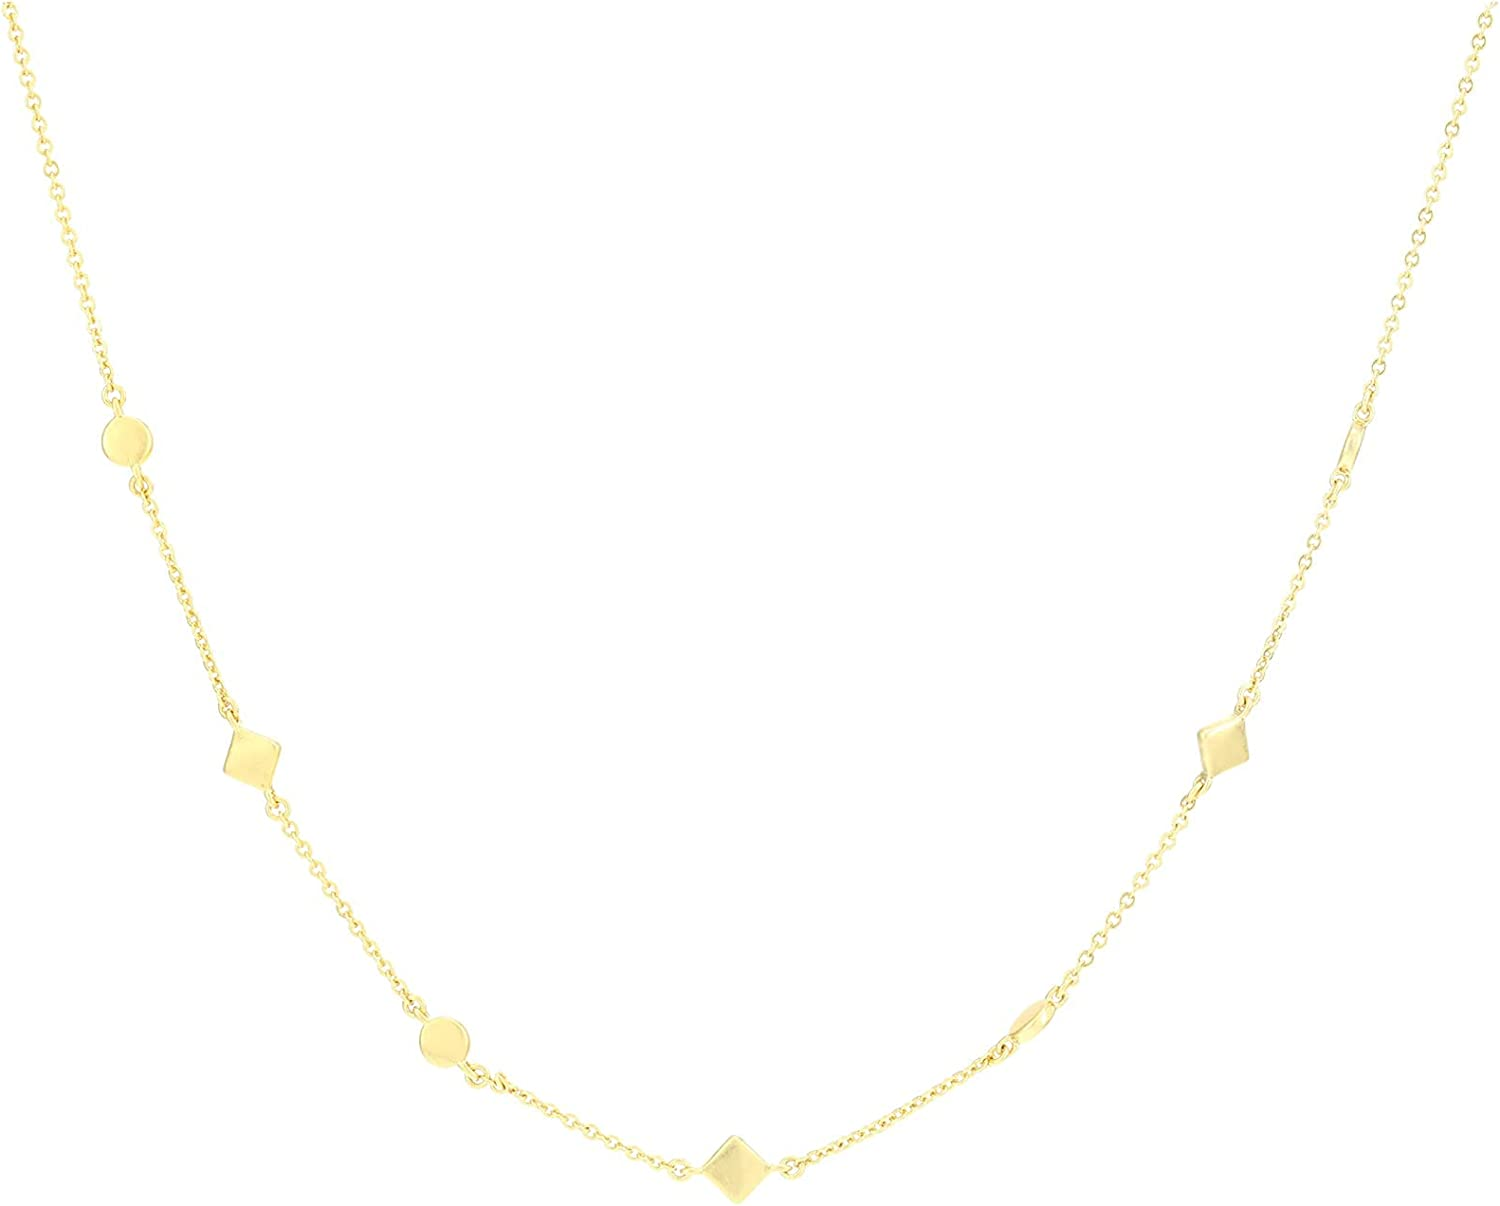 Madewell Heirloom Delicate Necklace